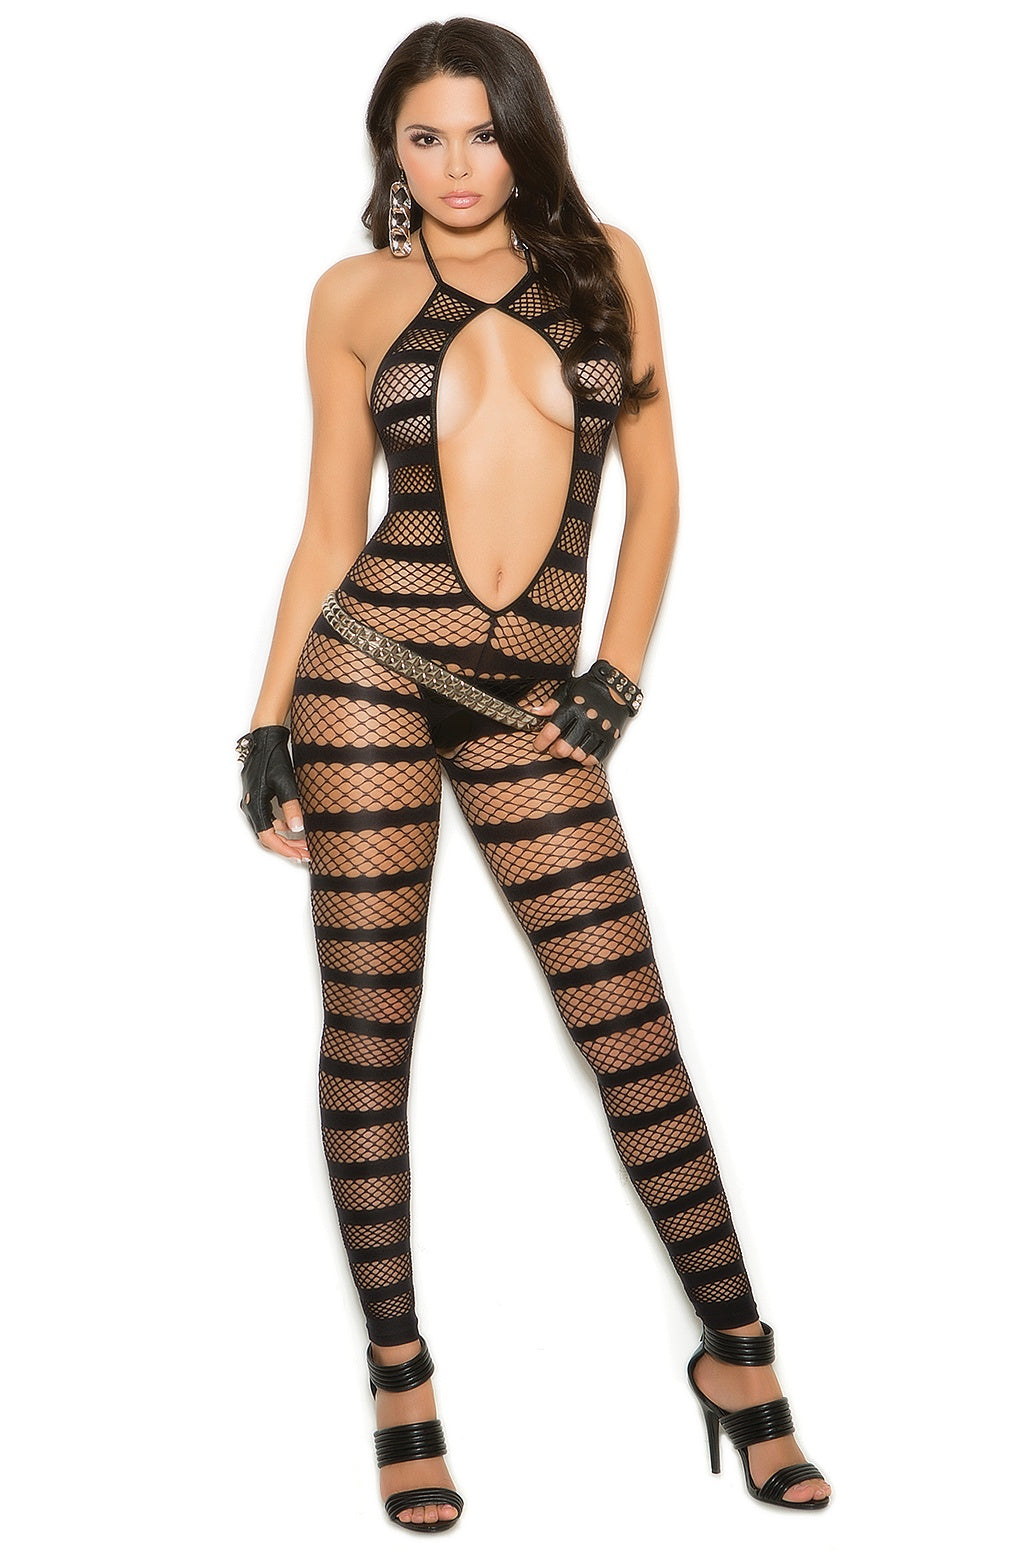 EM-1632 Luxury black bodystocking